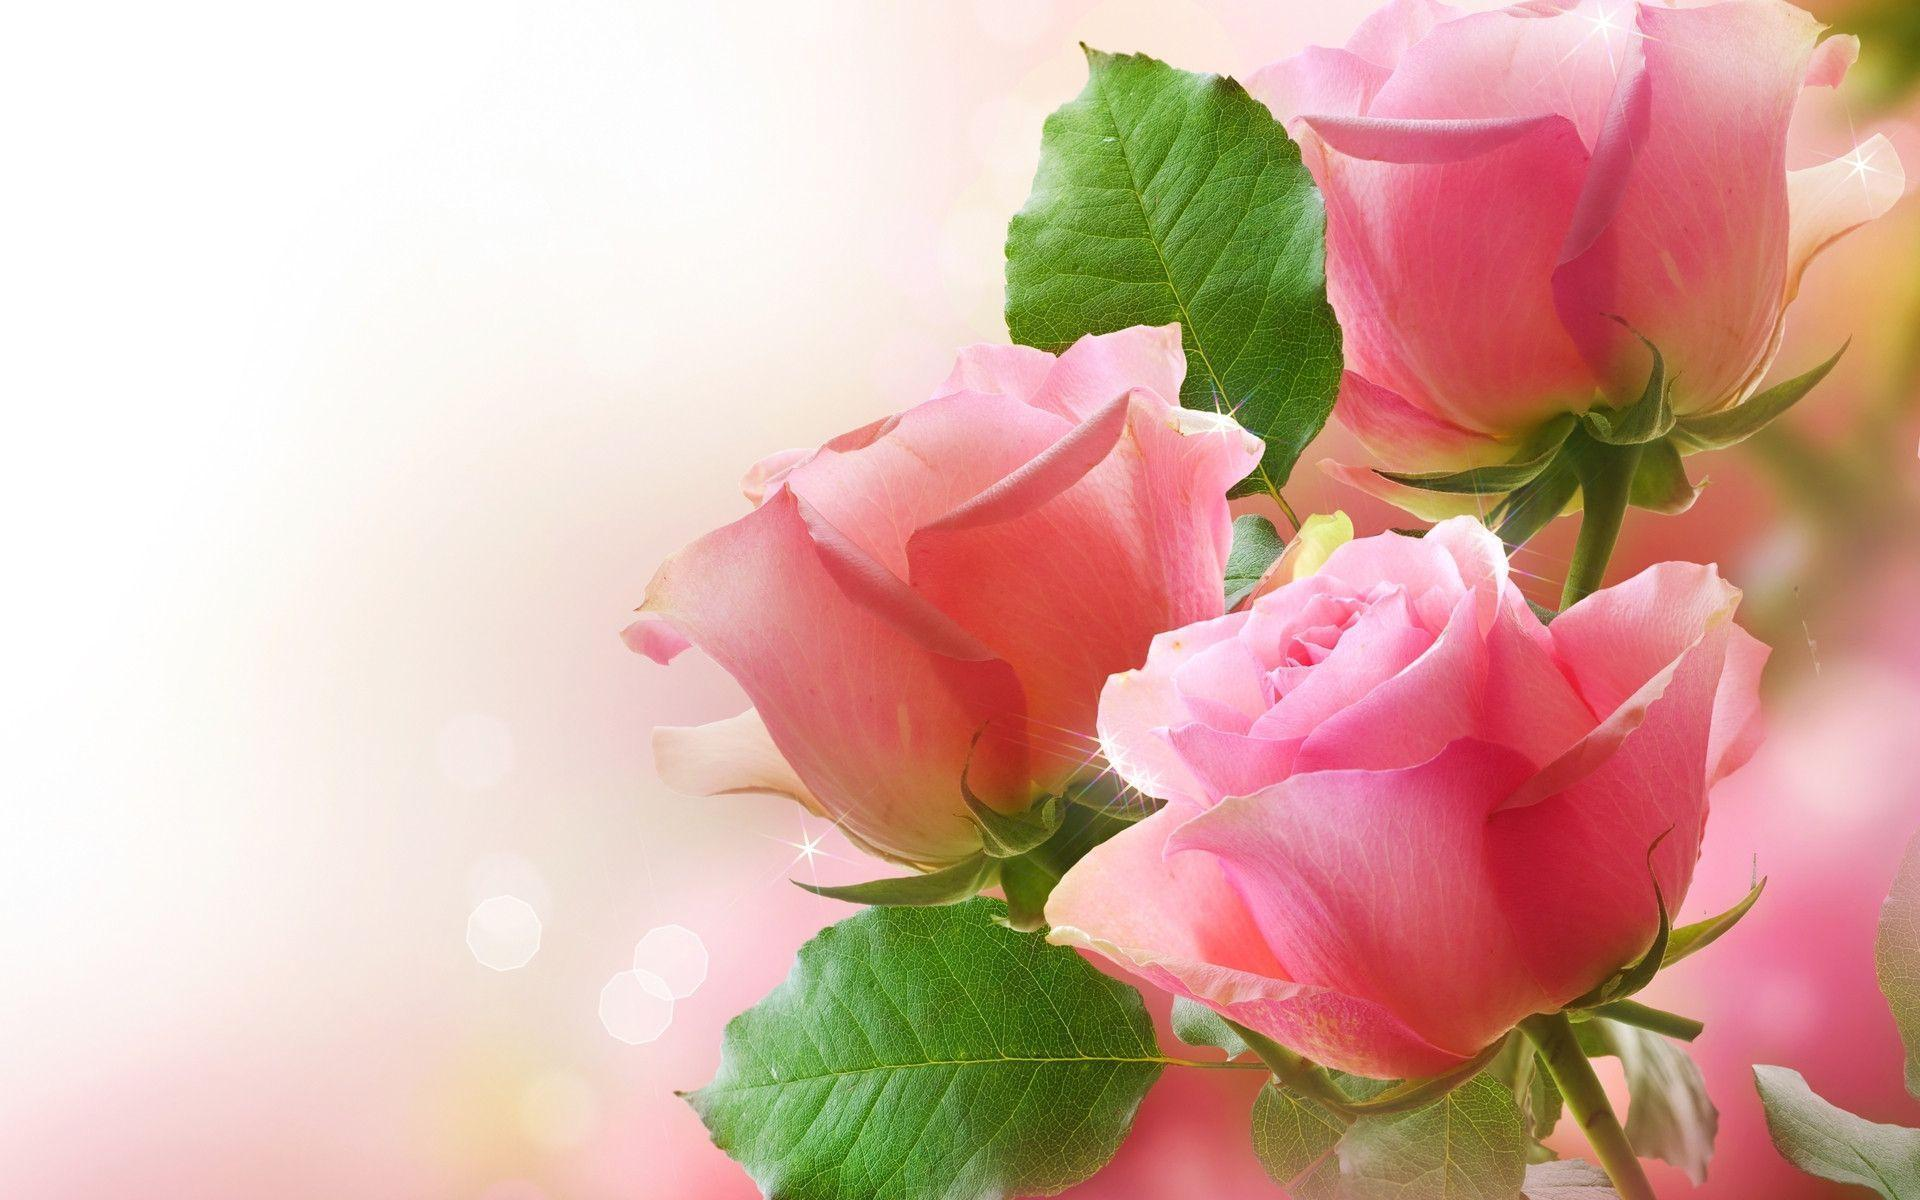 Wallpaper Flower Rose Love Hd Wallpapers Pictures Photo